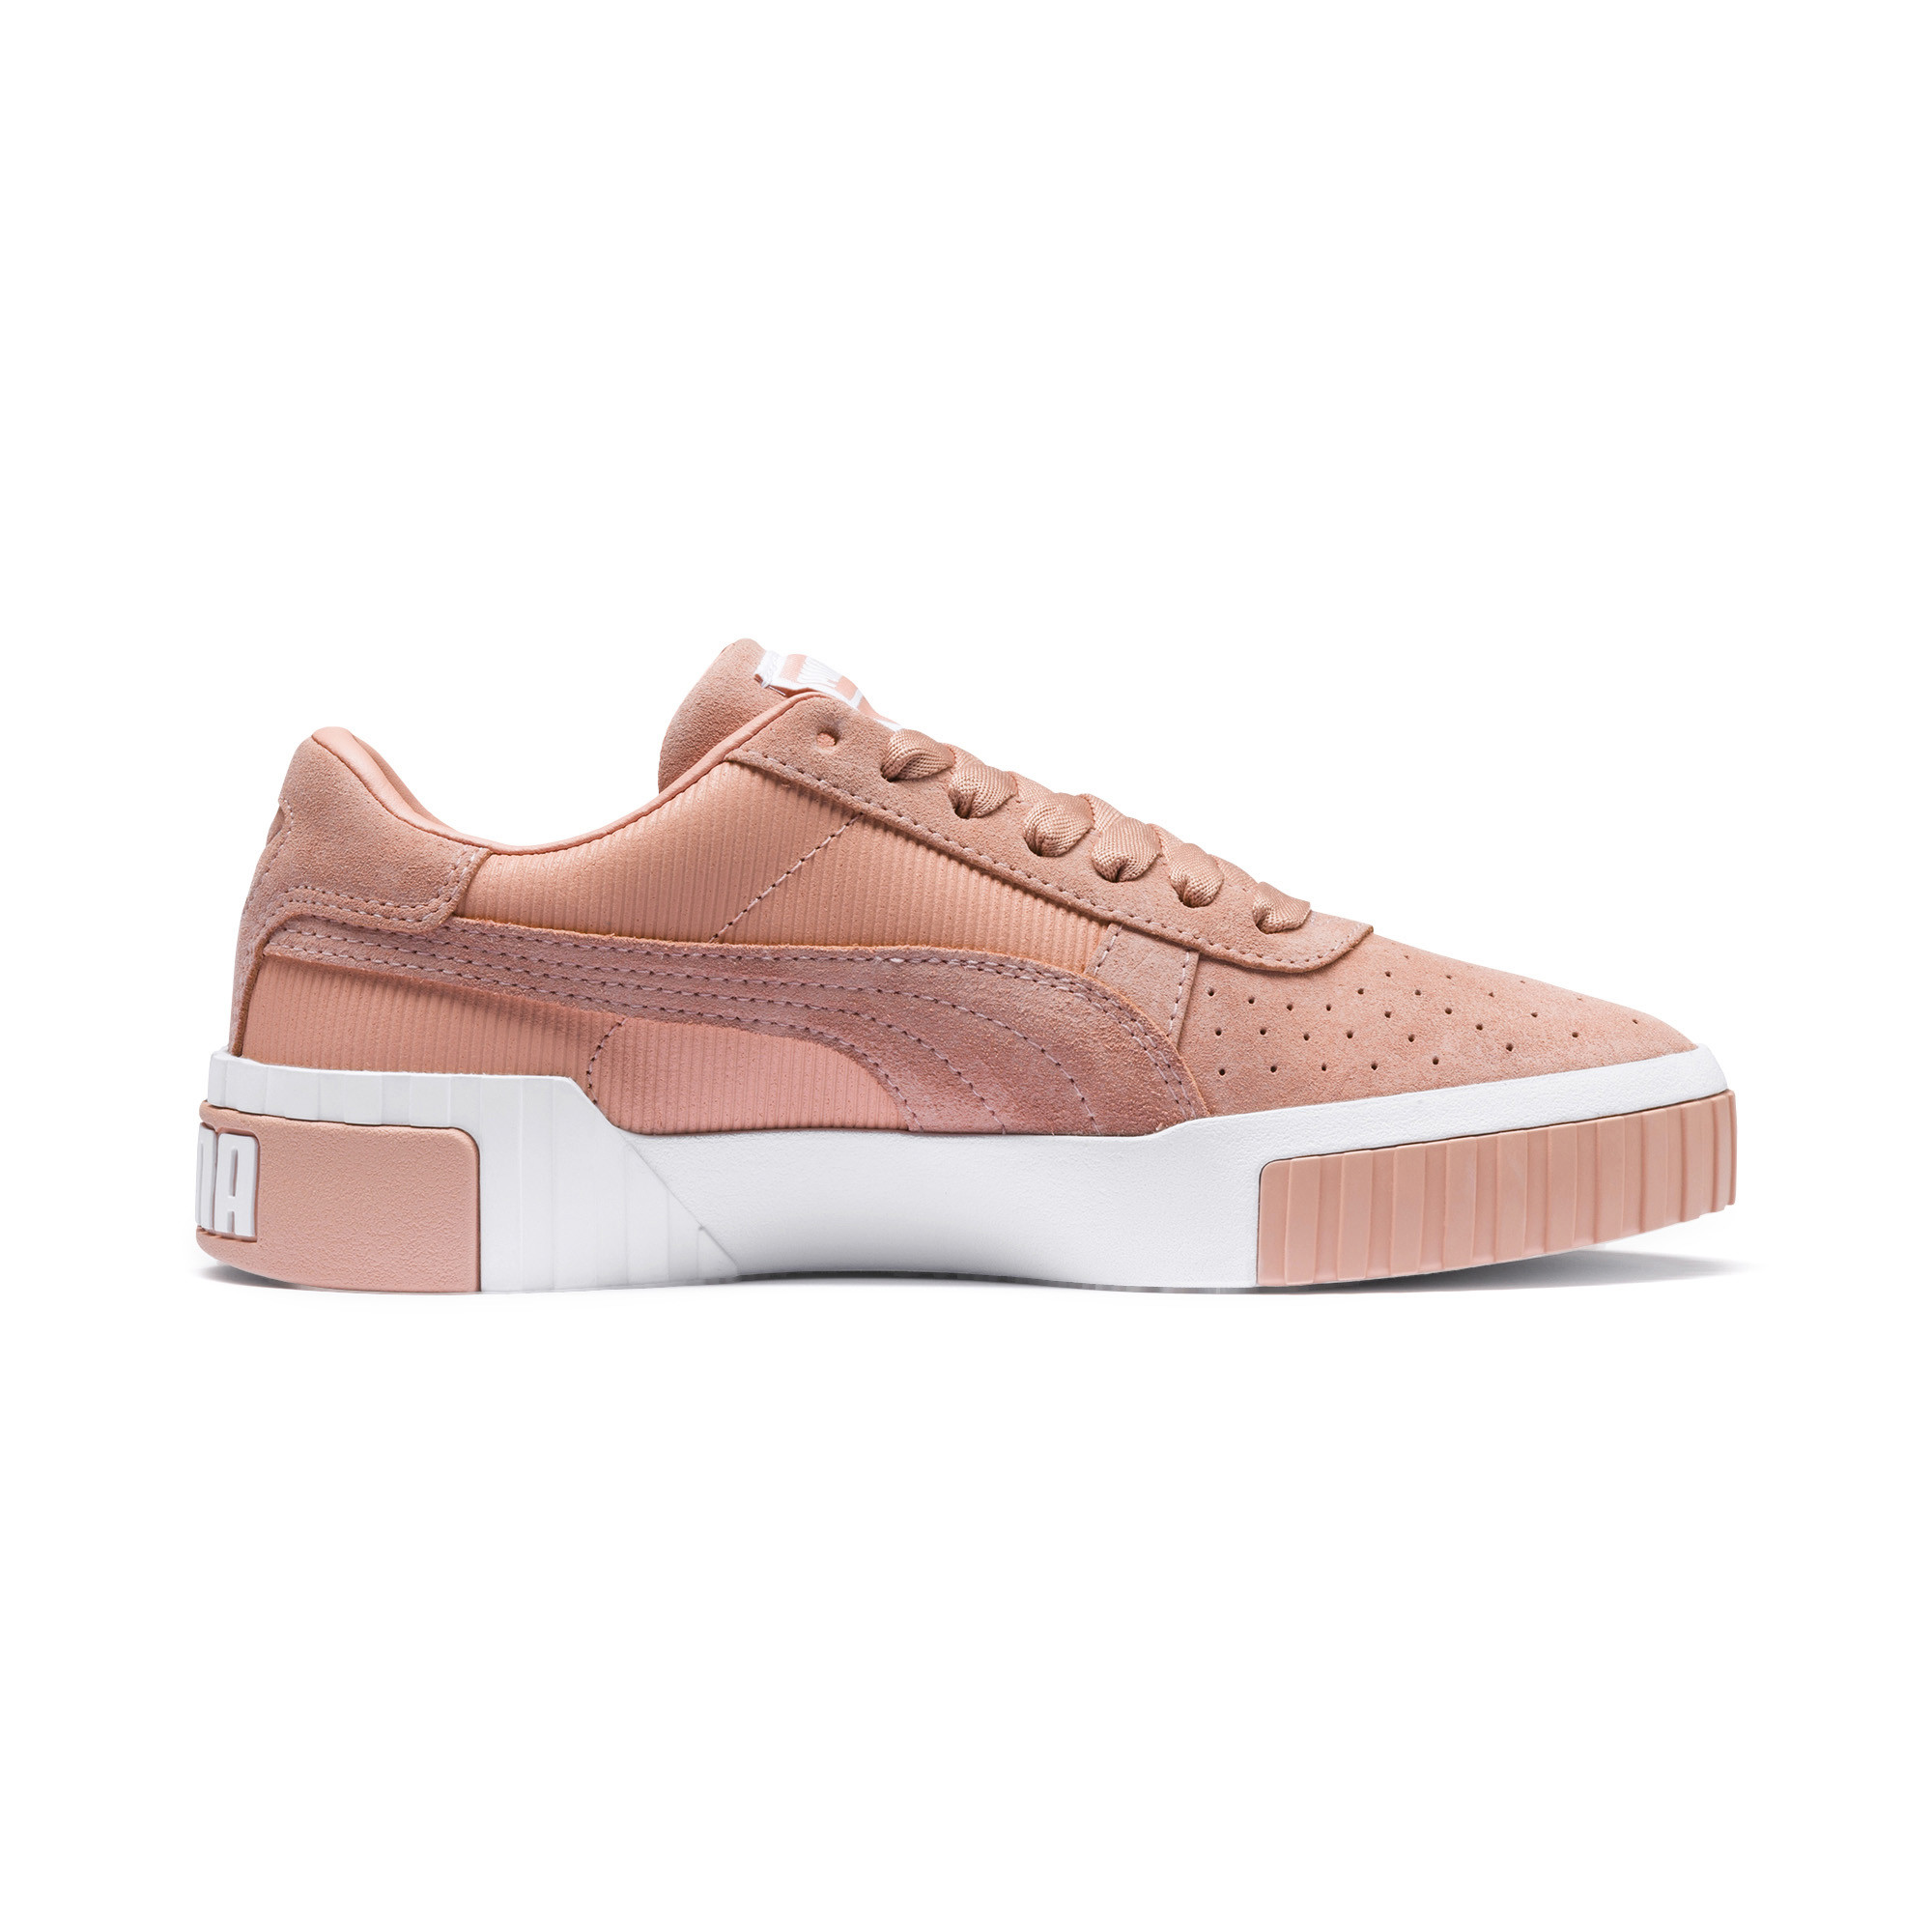 Image Puma Cali Palm Springs Women's Sneakers #6